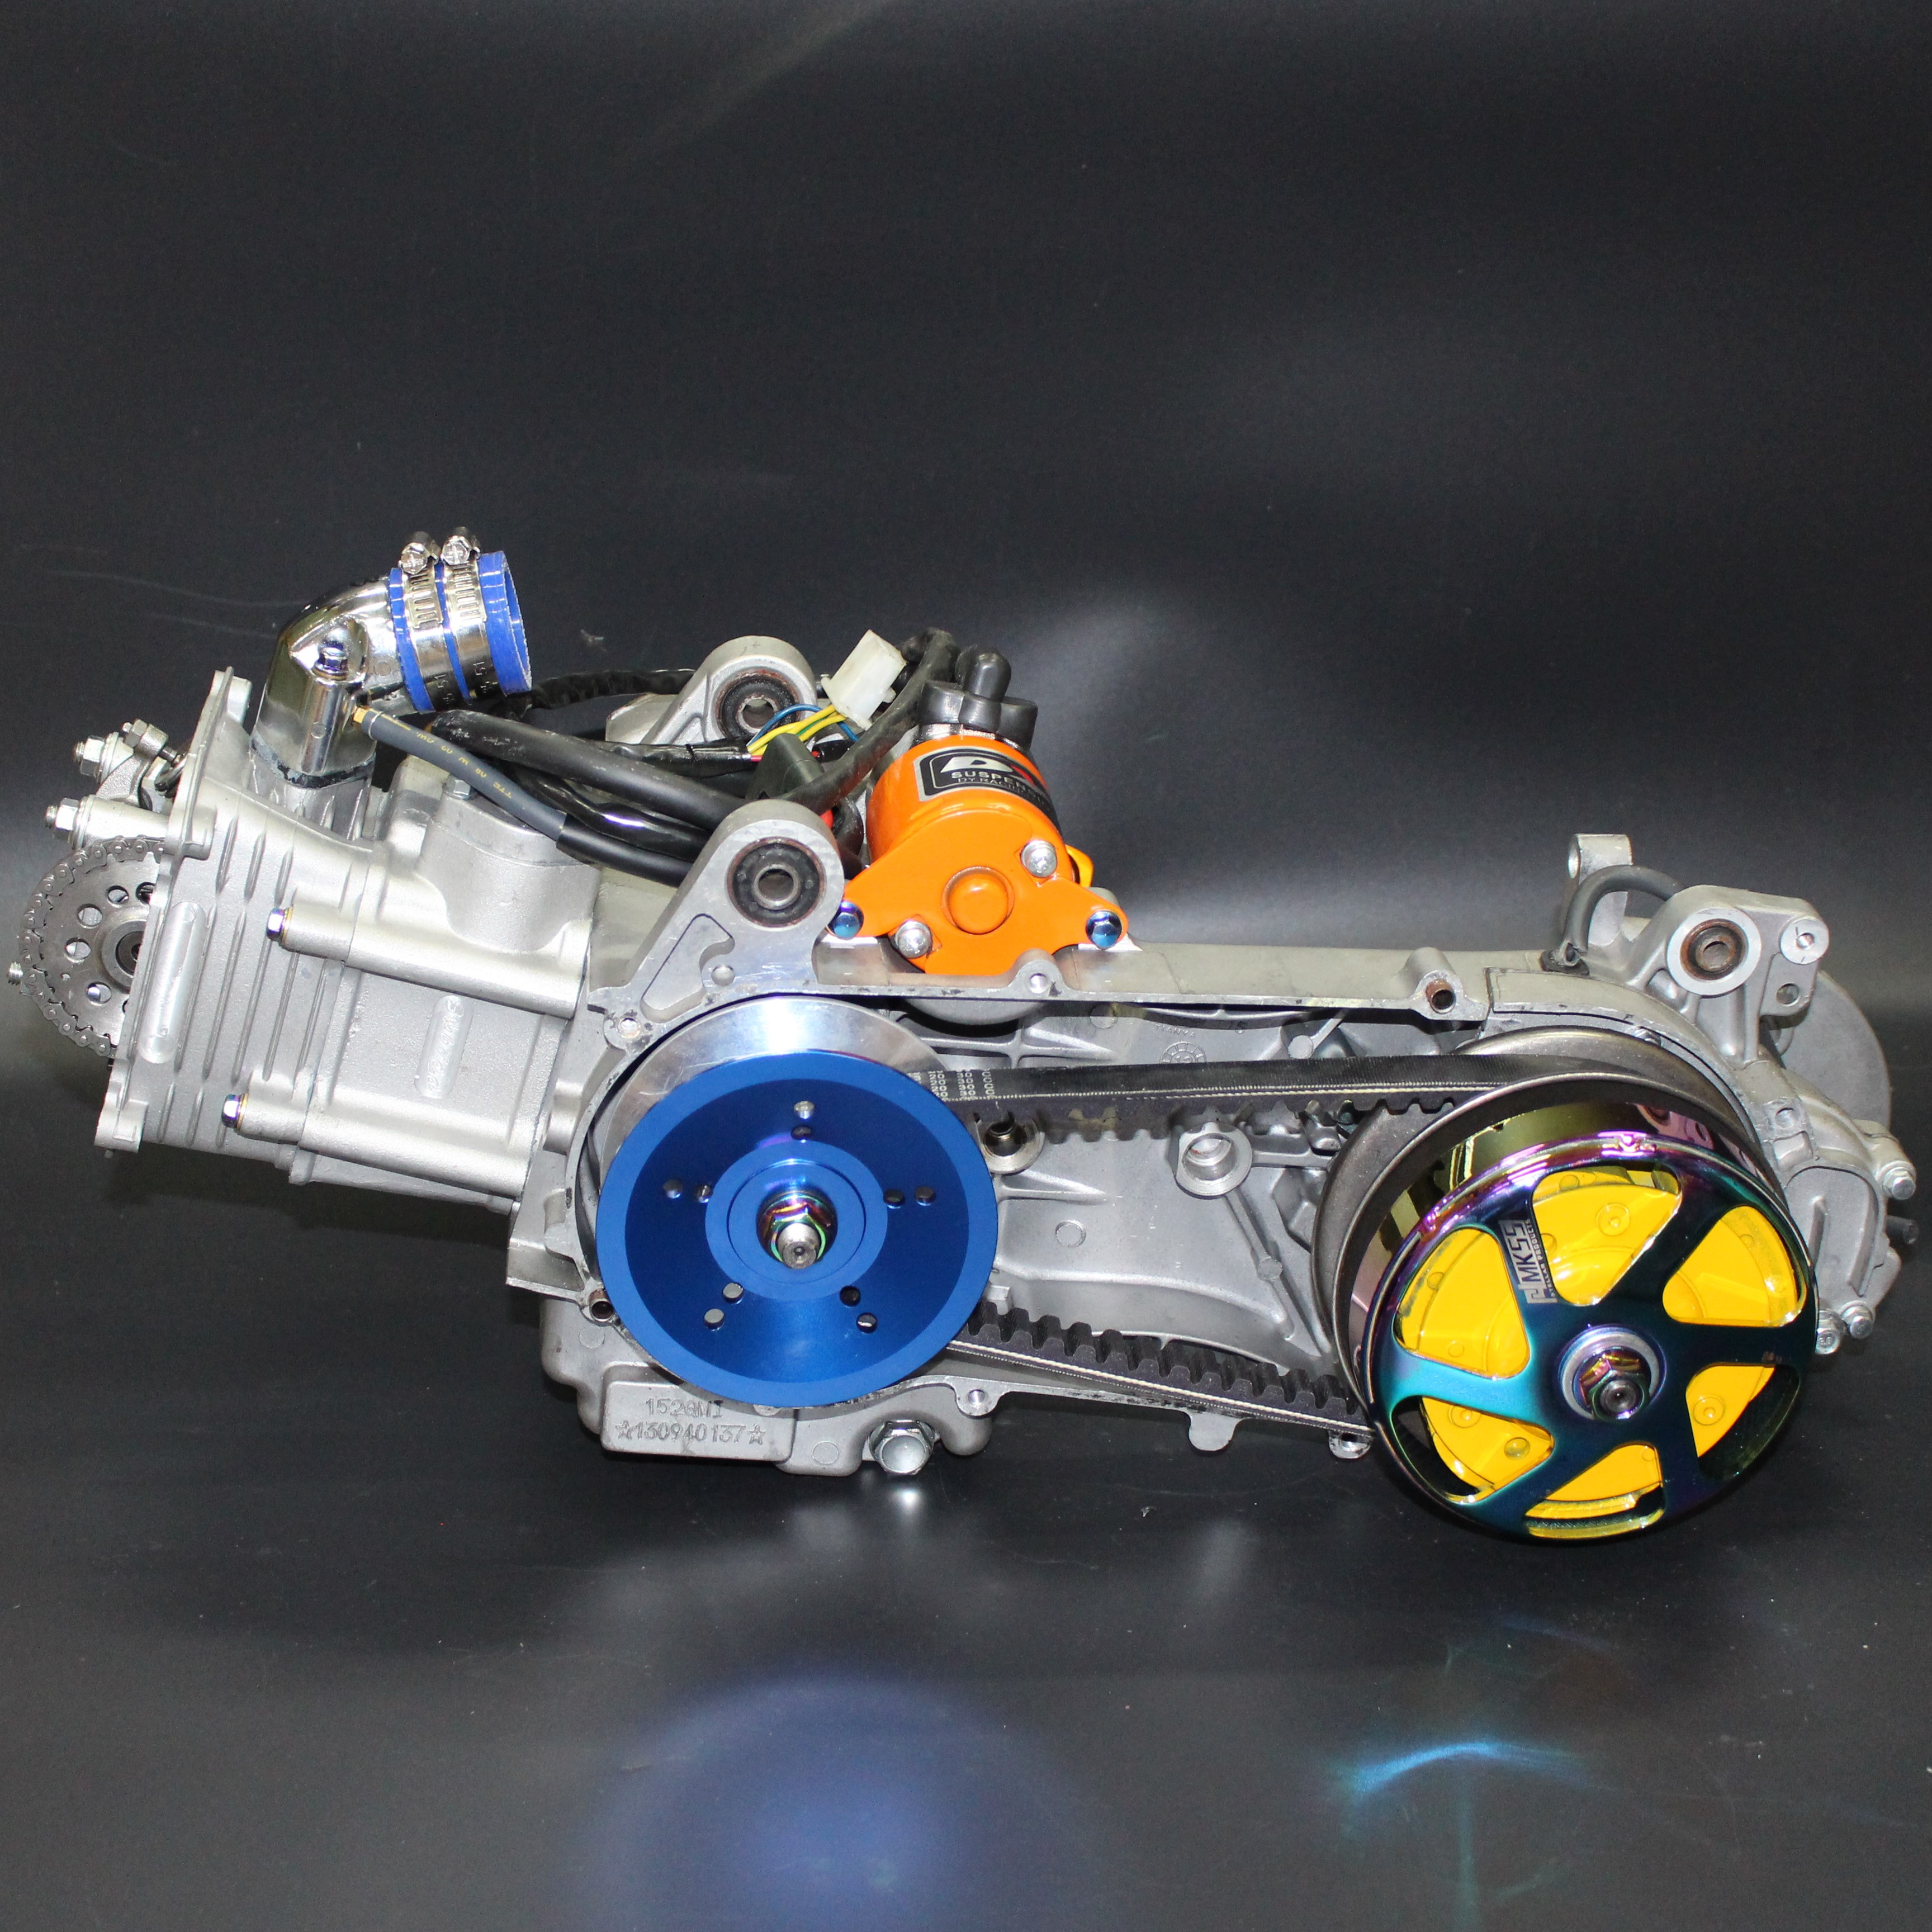 US $1000 0  GY6, motor, 63mm, cylinder, 2 valve, crankshaft ,300, water  cooling ,camshaft ,a8, 180cc, tuning, racing, engines-in Engines from